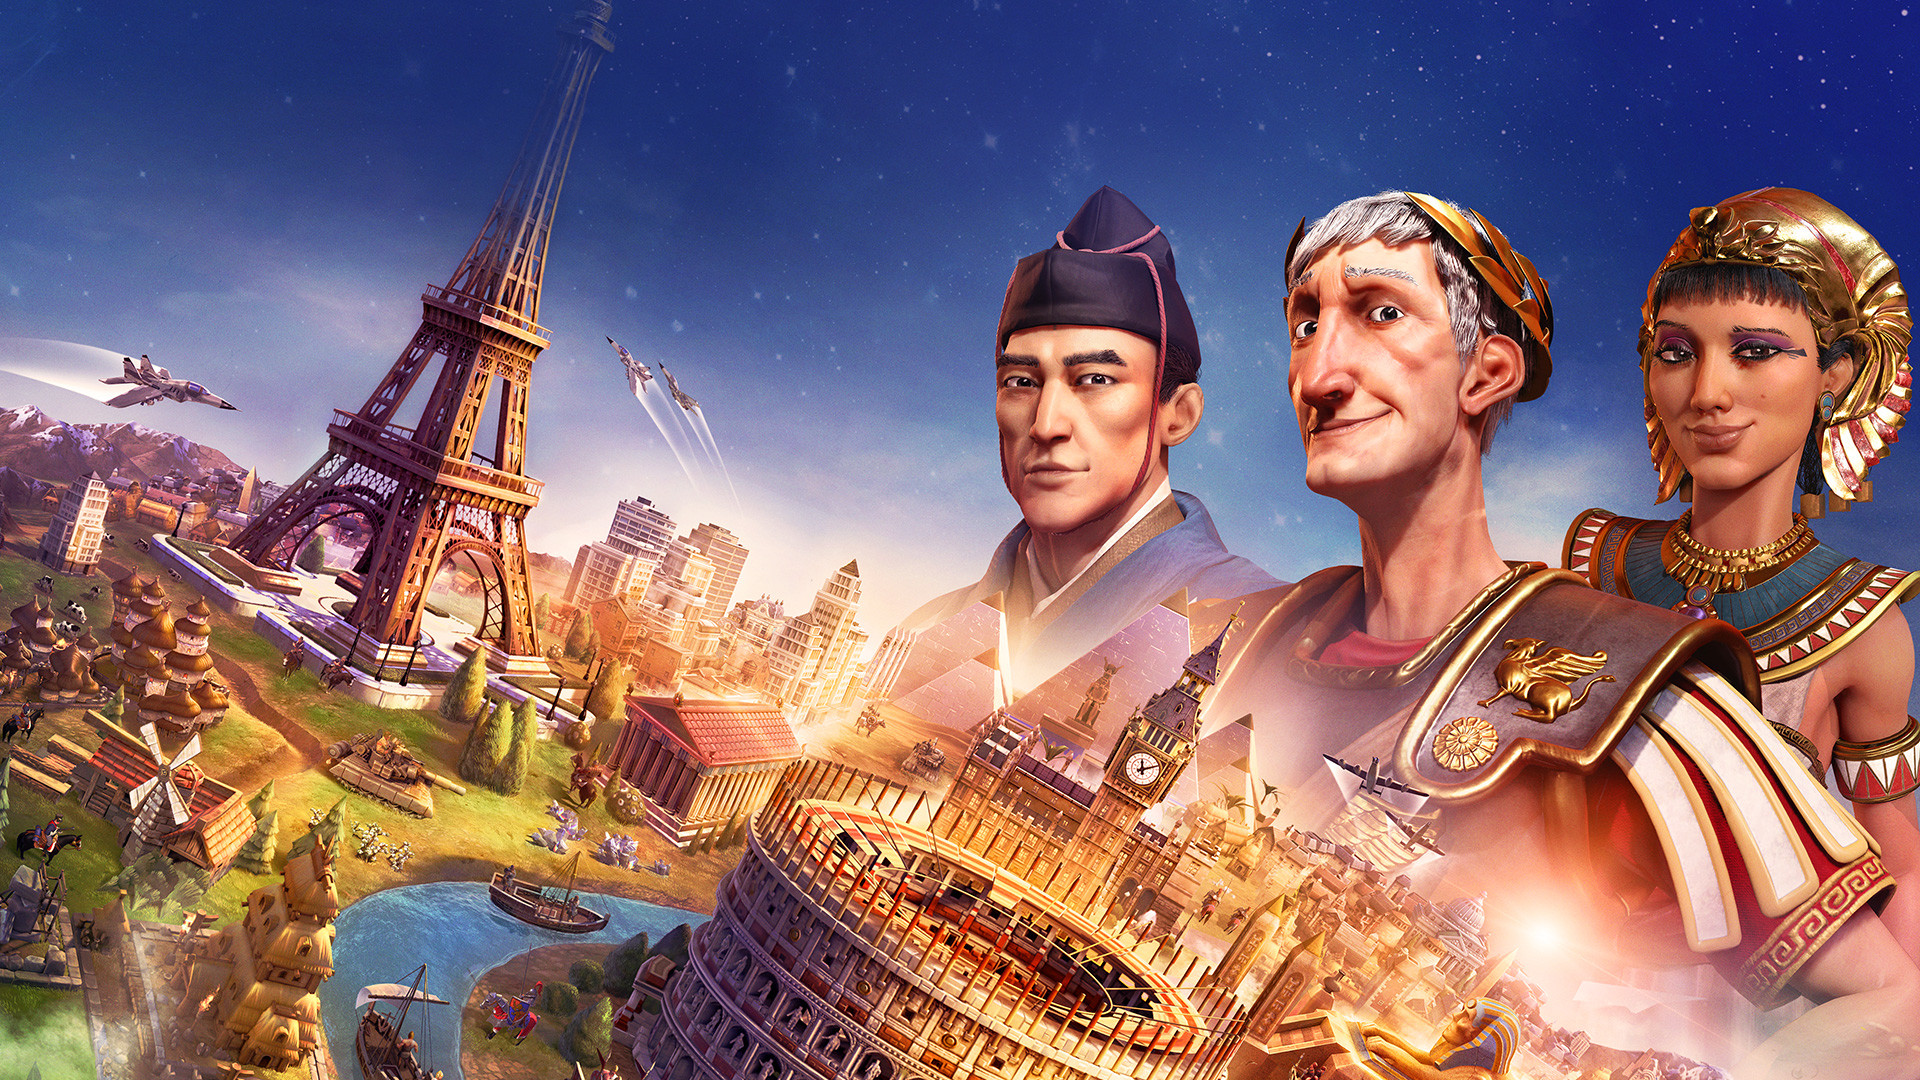 Civilization 6 is coming to Nintendo Switch in November